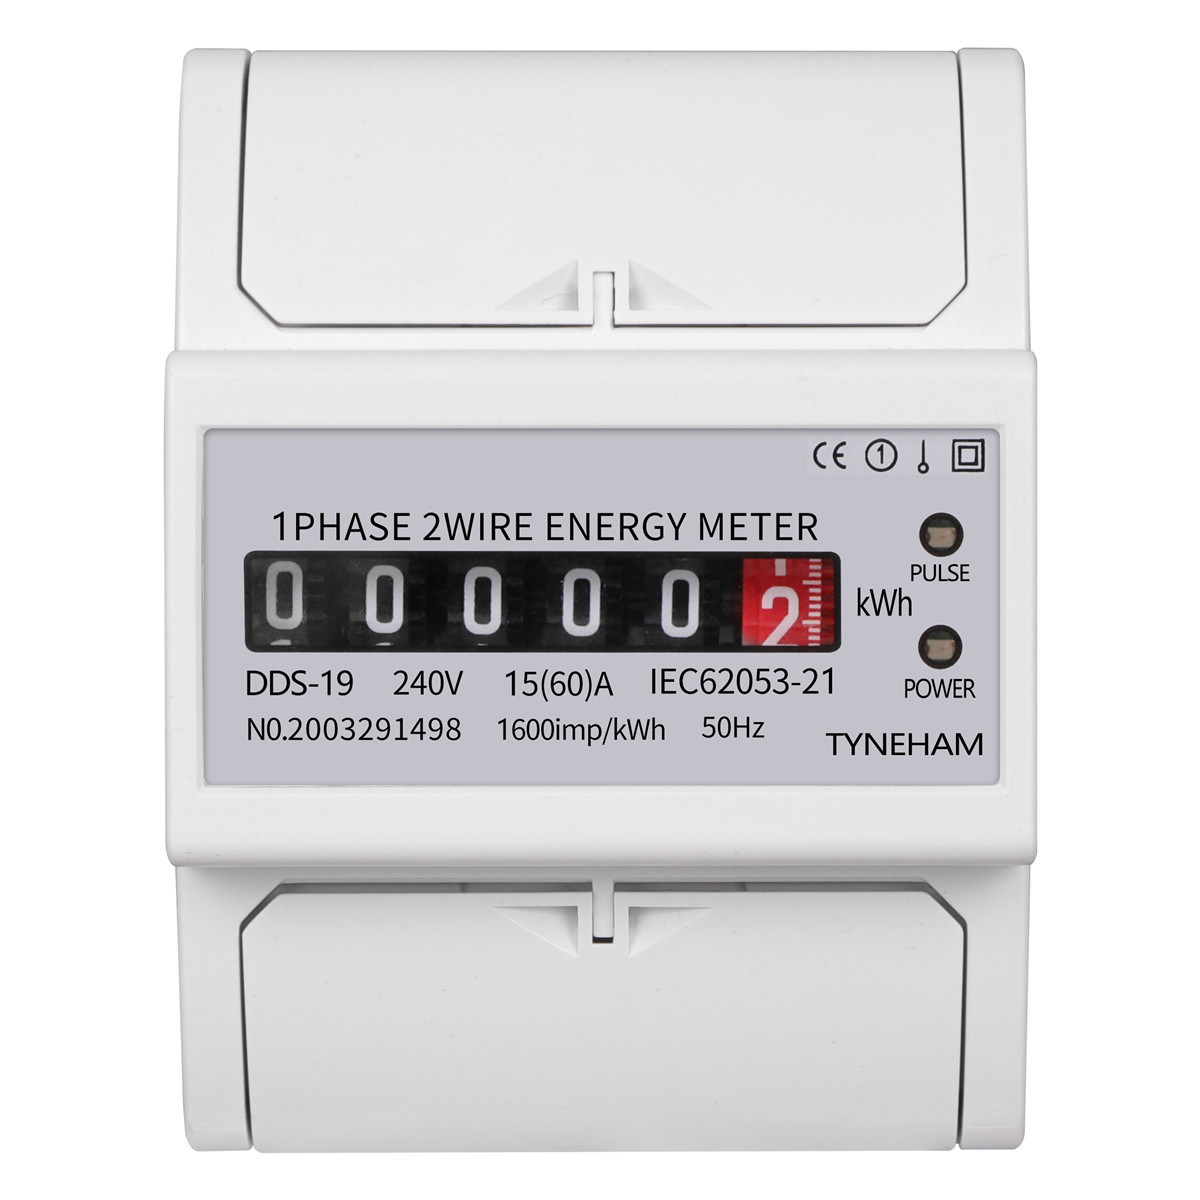 China 2 Dds 19r Din Rail Single Phase Two Wire Register Energy Meter China Din Rail Single Phase Register Energy Meter